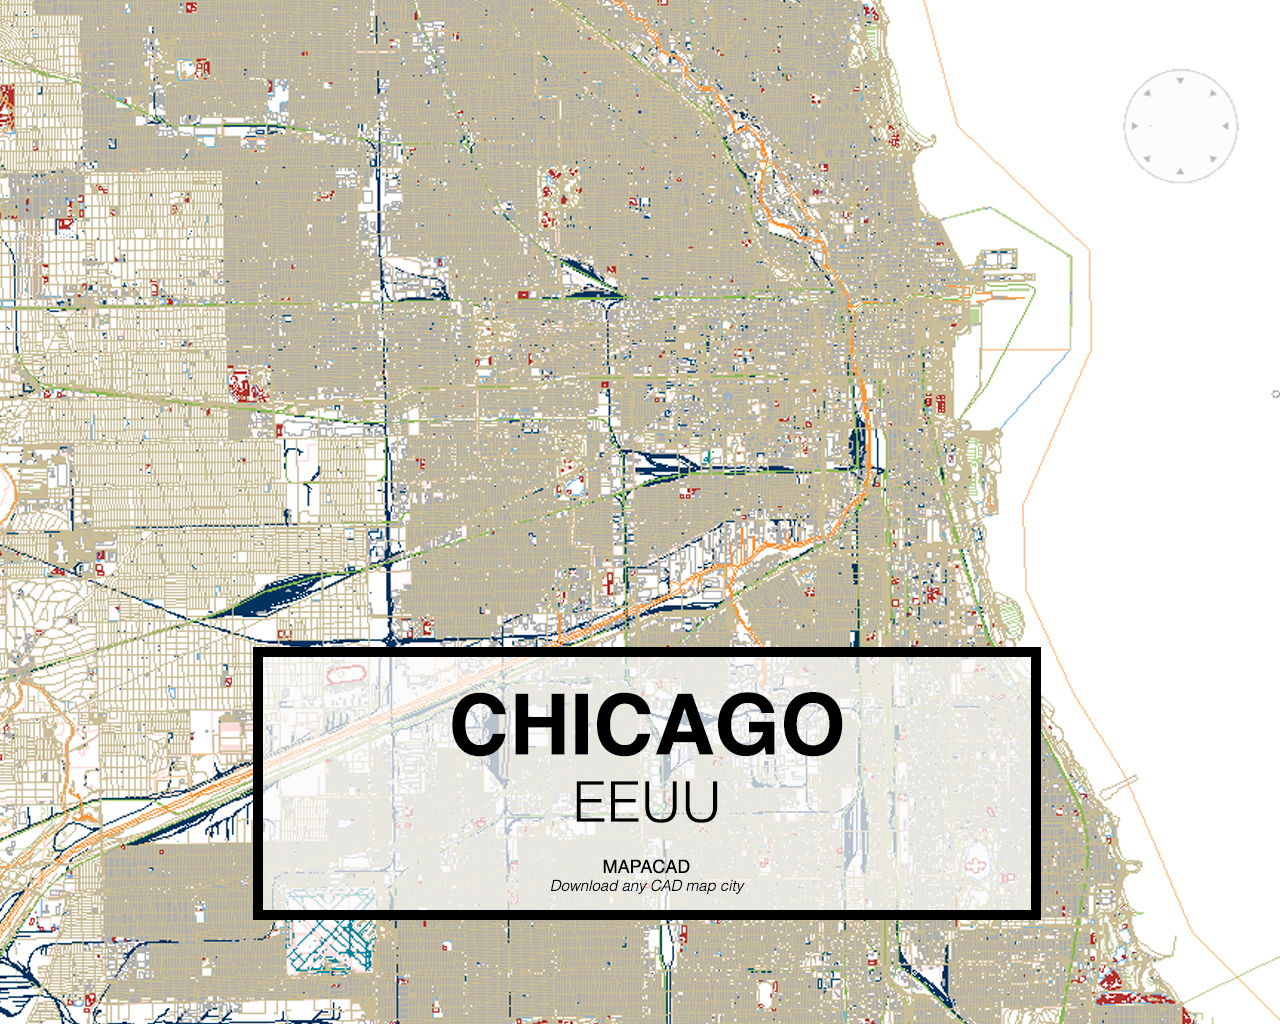 Download chicago dwg mapacad chicago eeuu 001 mapacad download map cad dwg gumiabroncs Choice Image